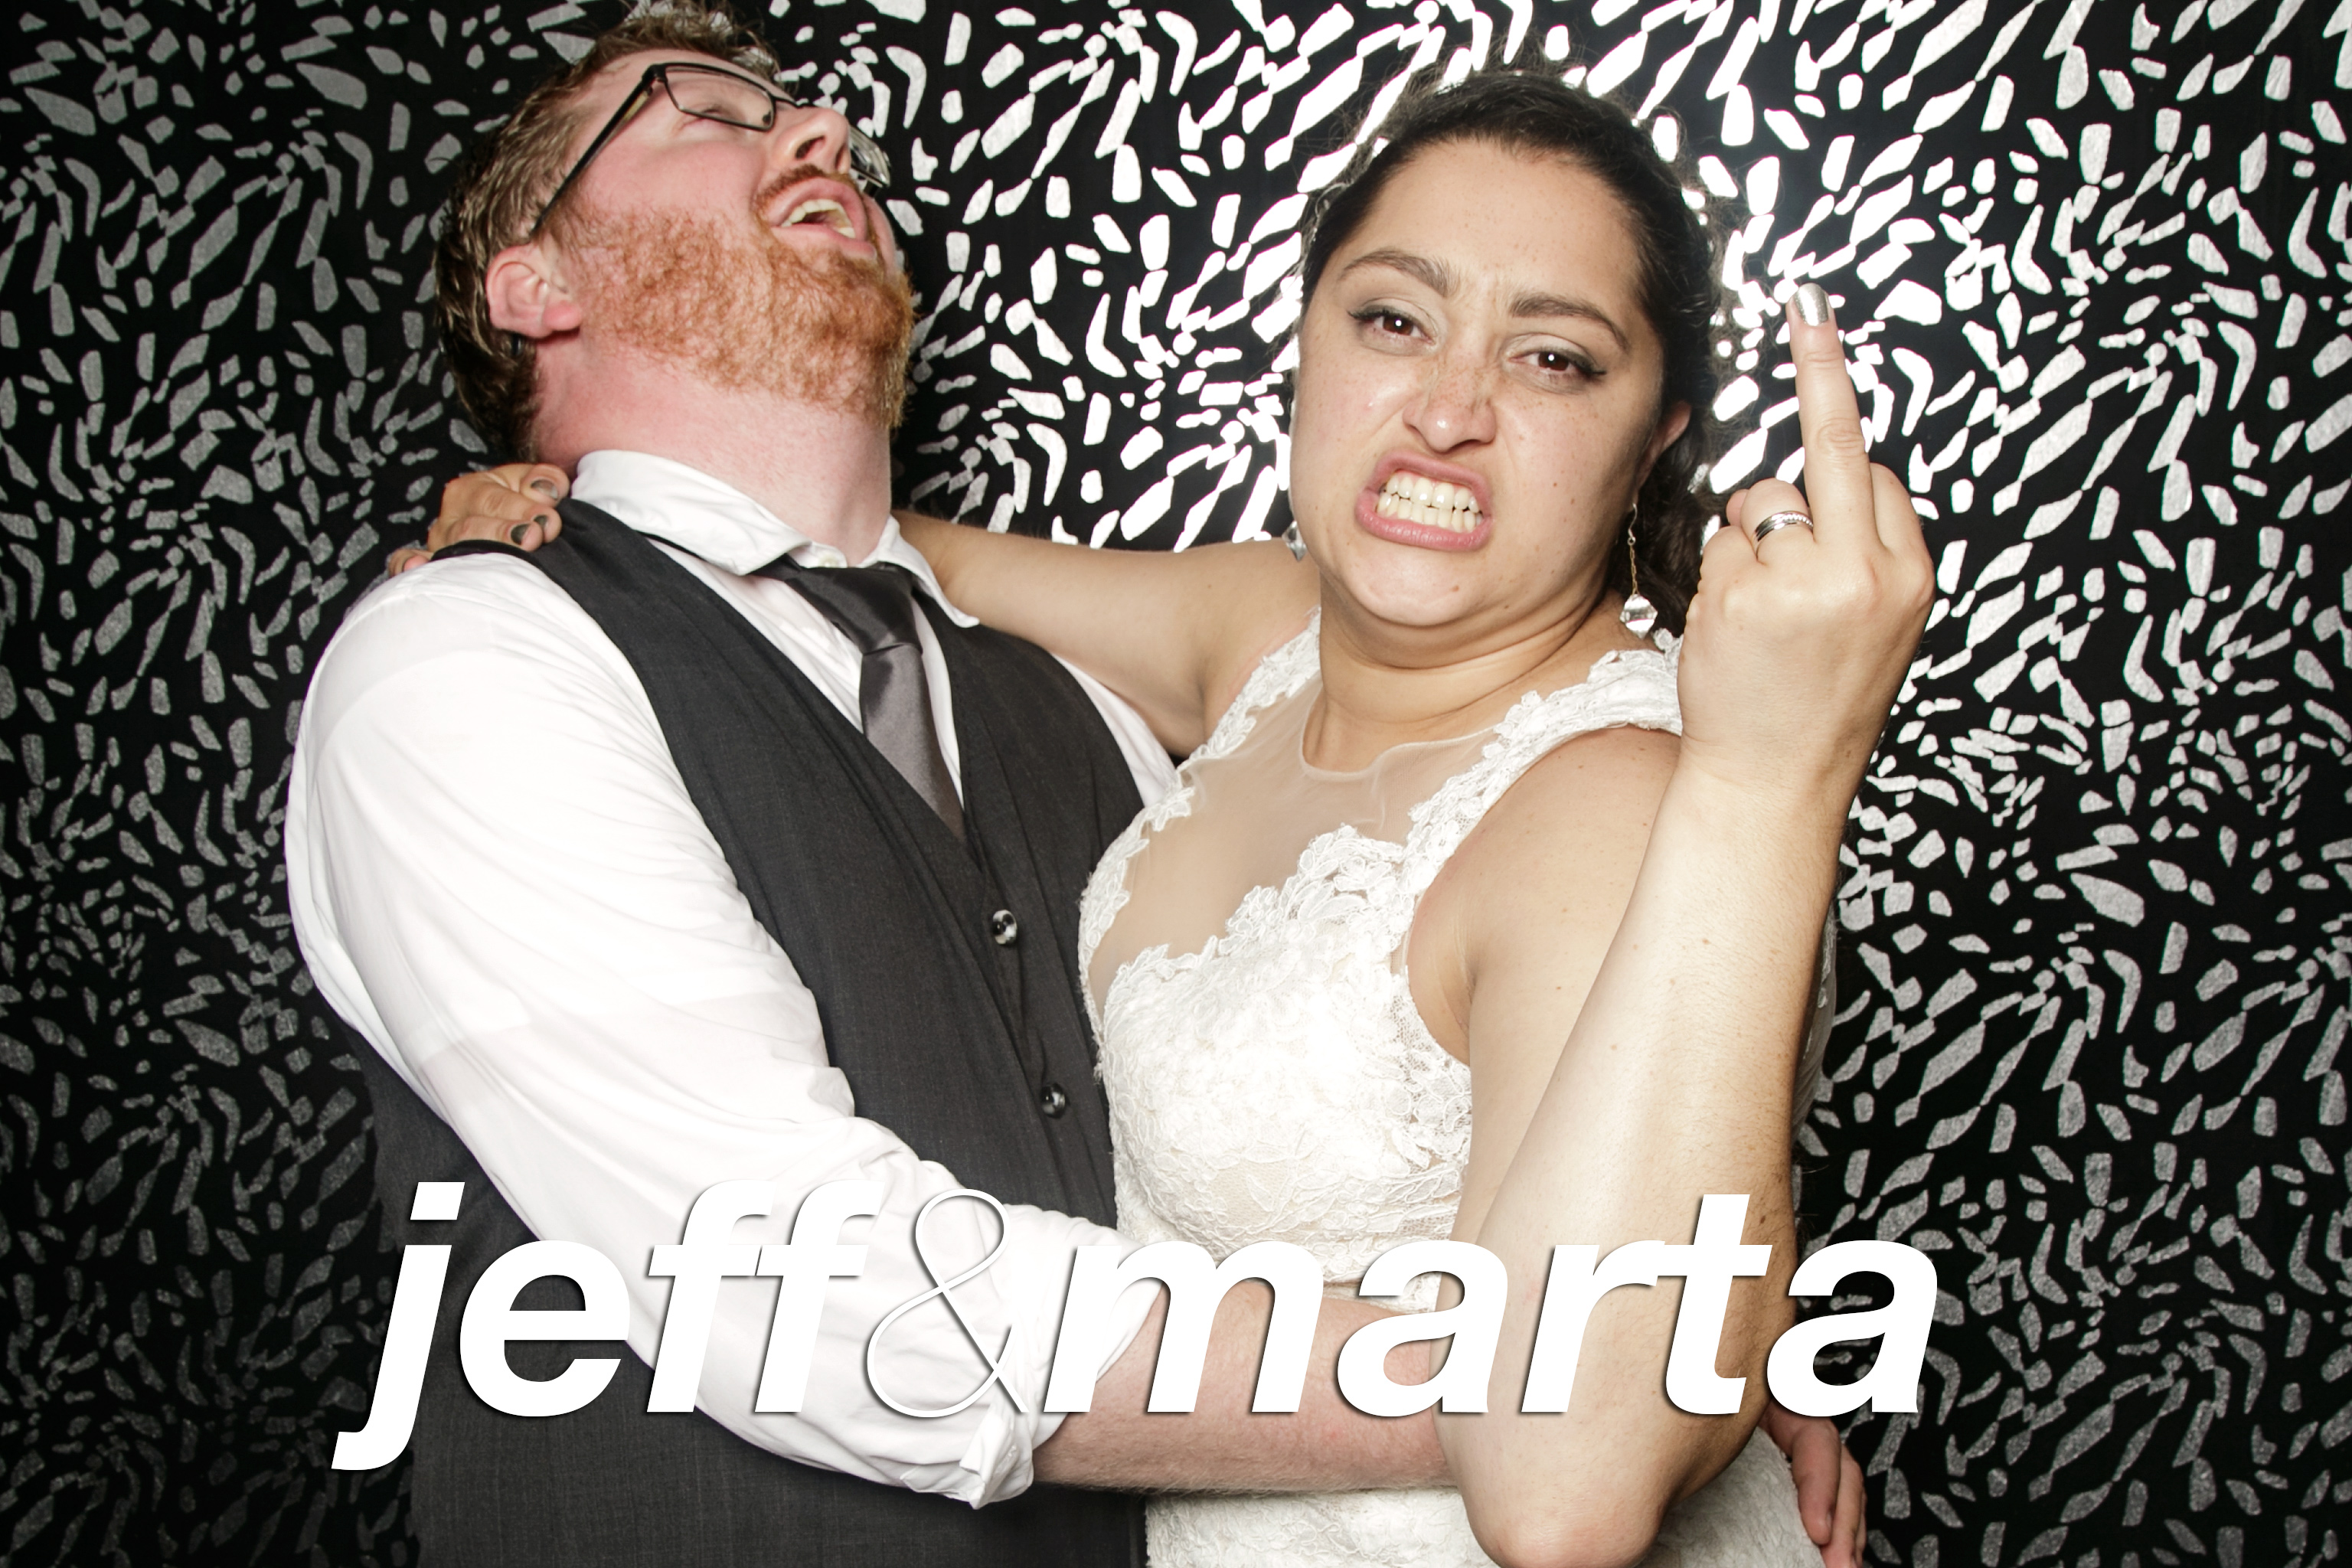 photo booth portraits from jeff and marta's wedding at camp wandawega, september 2016